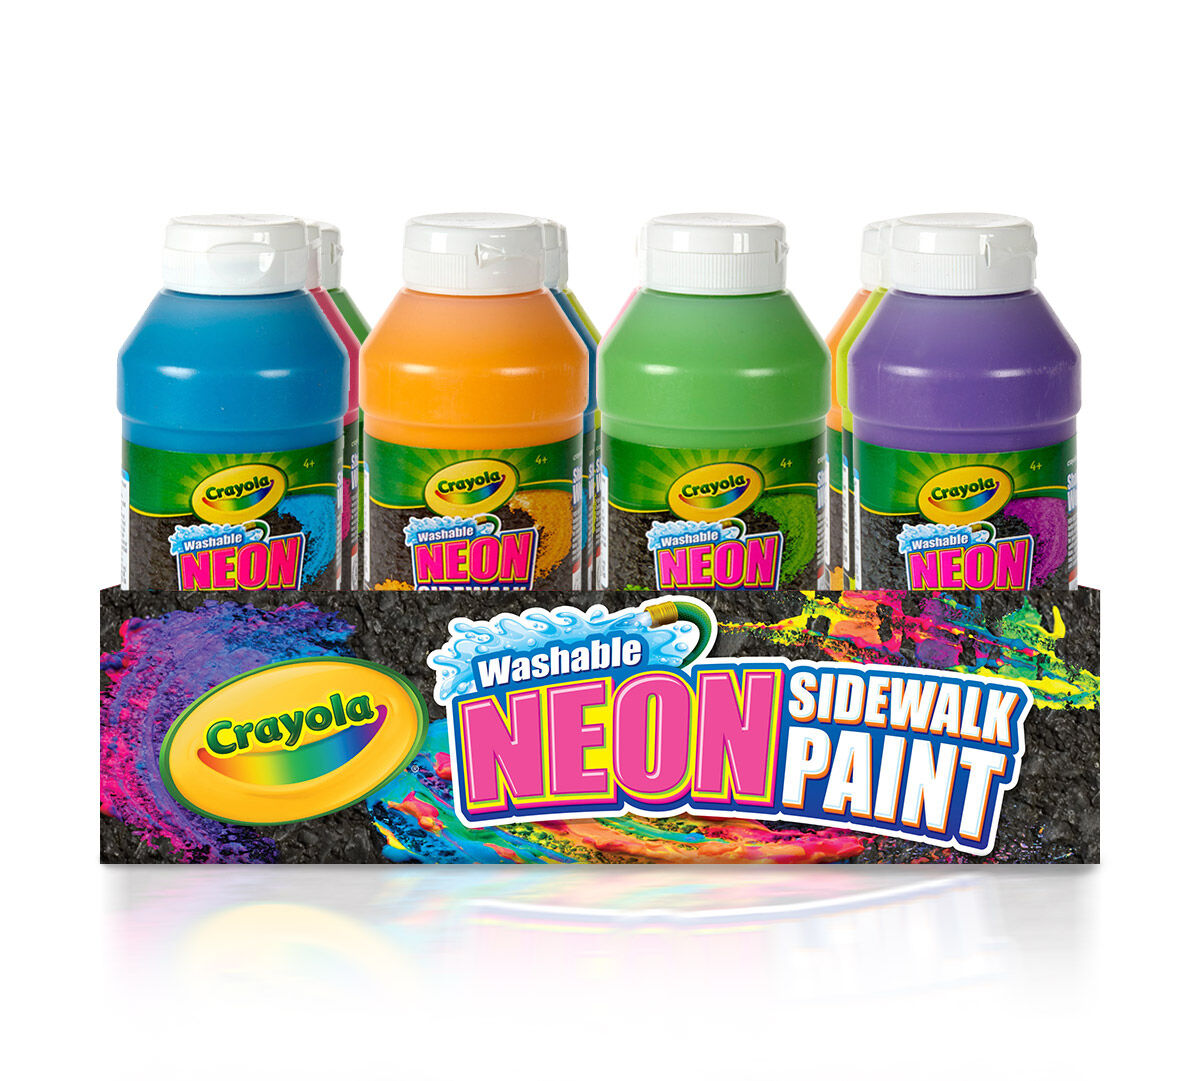 "<p>Create BIG, BRIGHT outdoor art with 12 ct. Washable Sidewalk Neon Paint! This 12-piece kit includes 2 Neon Blue Washable Sidewalk Paints, 2 Neon Pink Washable Sidewalk Paints, 2 Neon Yellow Washable Sidewalk Paints, 2 Neon Orange Washable Sidewalk Paints, 2 Neon Green Washable Sidewalk Paints, and 2 Neon Purple Washable Sidewalk Paints. The perfect kit to fill up all of your <a href=""http://shop.crayola.com/toys-and-activities/outdoor-play/sidewalk-paint-sprayer-5535330000.html"">Sidewalk Paint Sprayer</a> or just for the ultimate outdoor Sidewalk paint party!</p>"